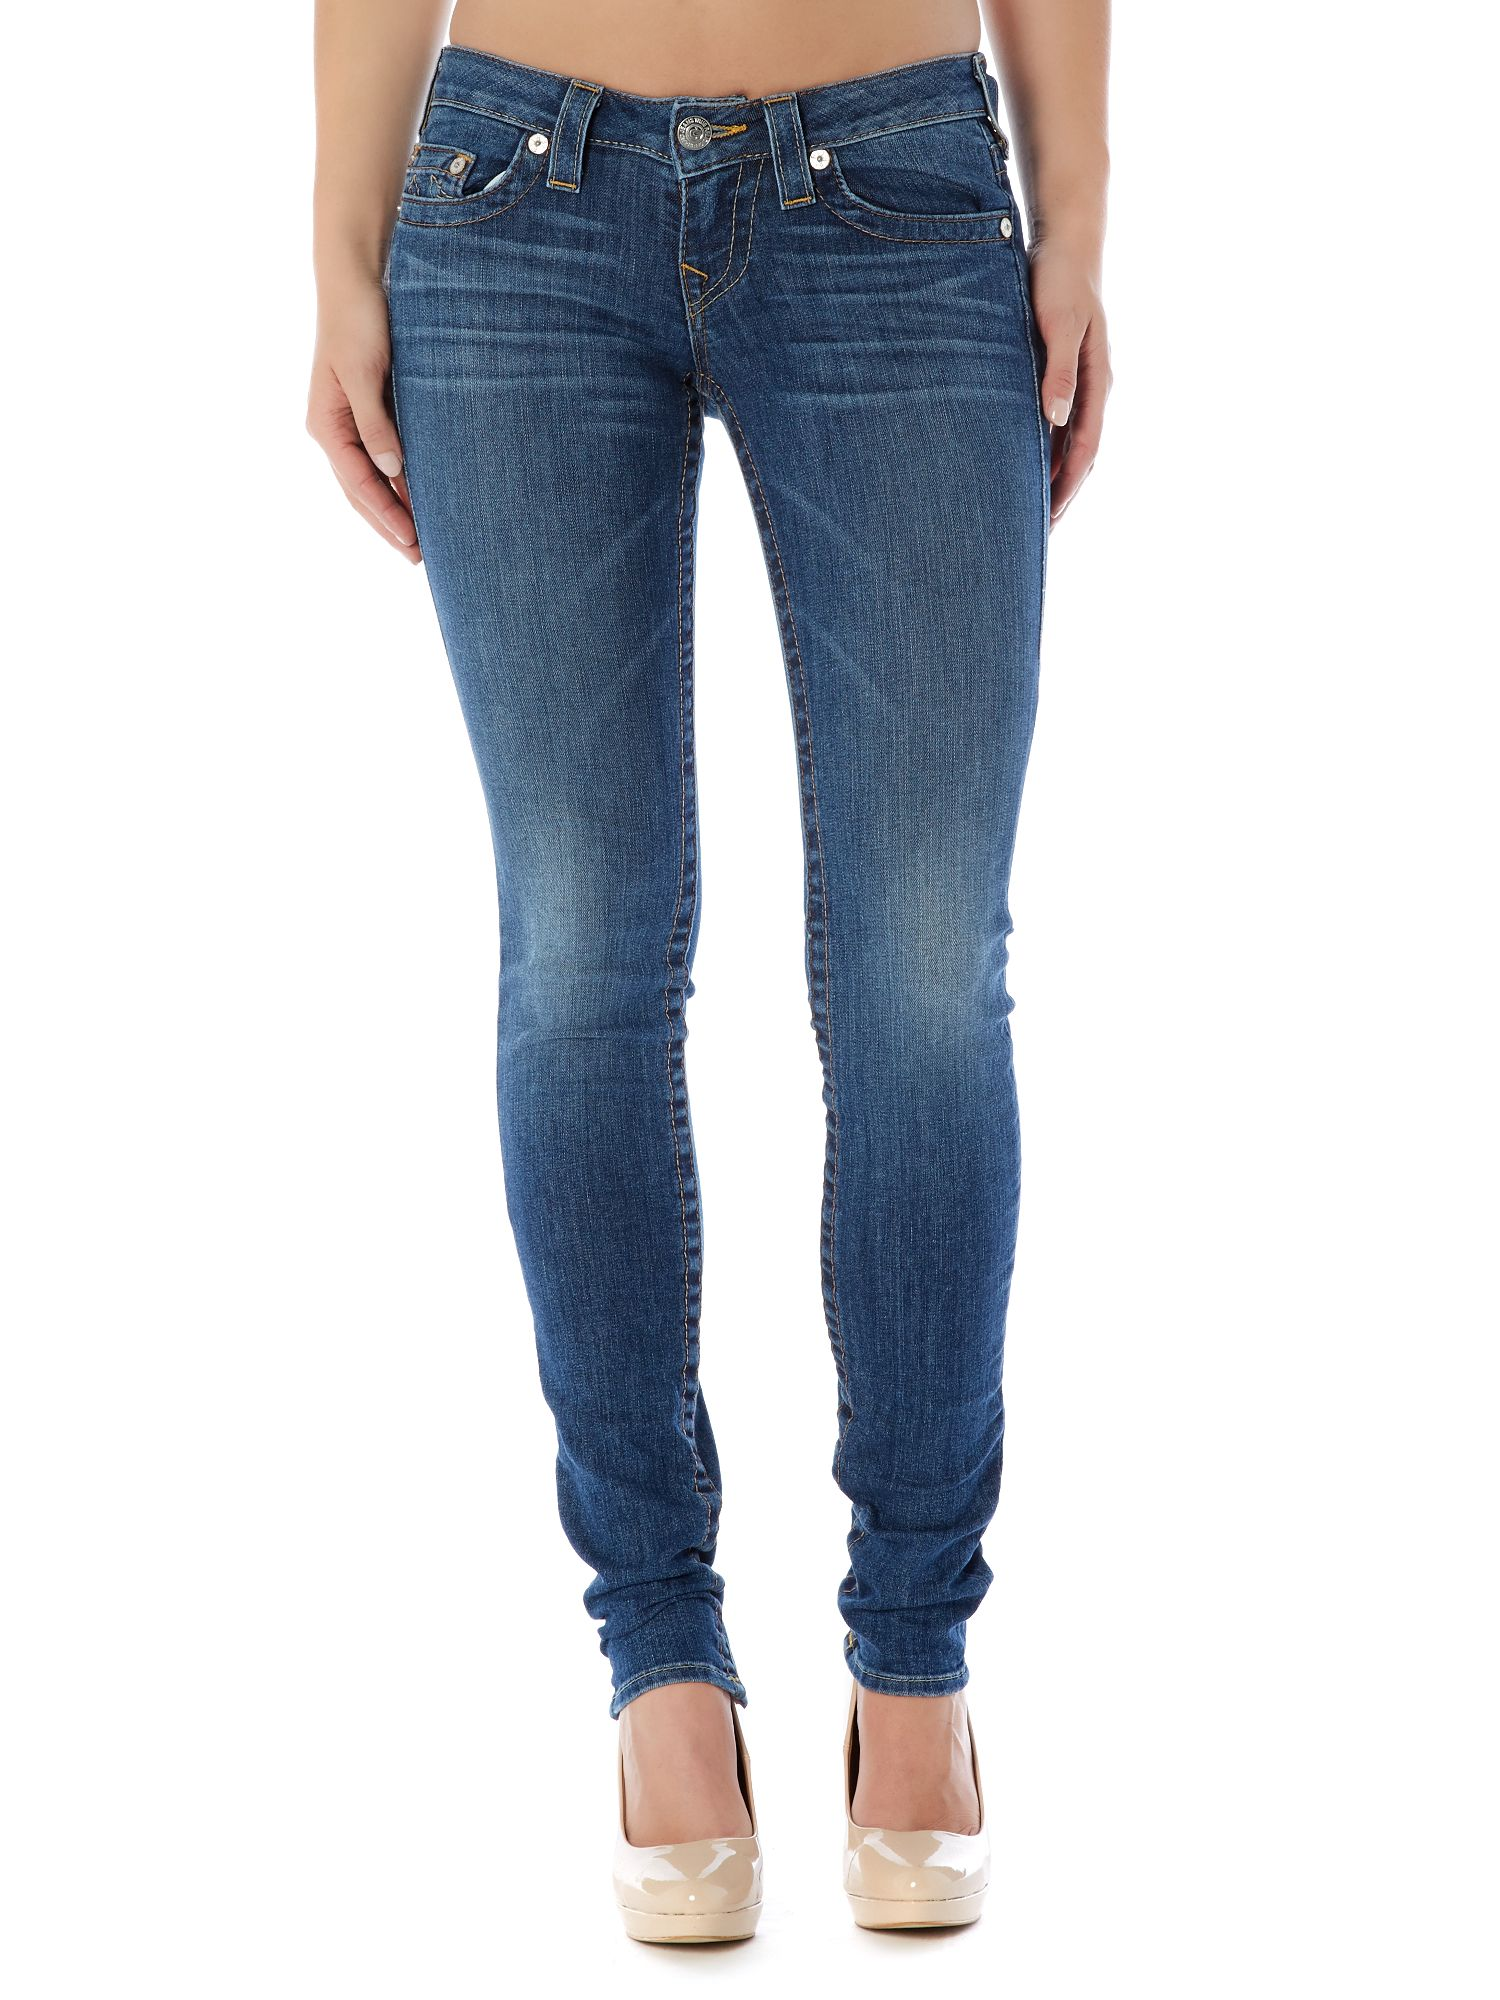 Stella low-rise skinny jeans in Del Mar